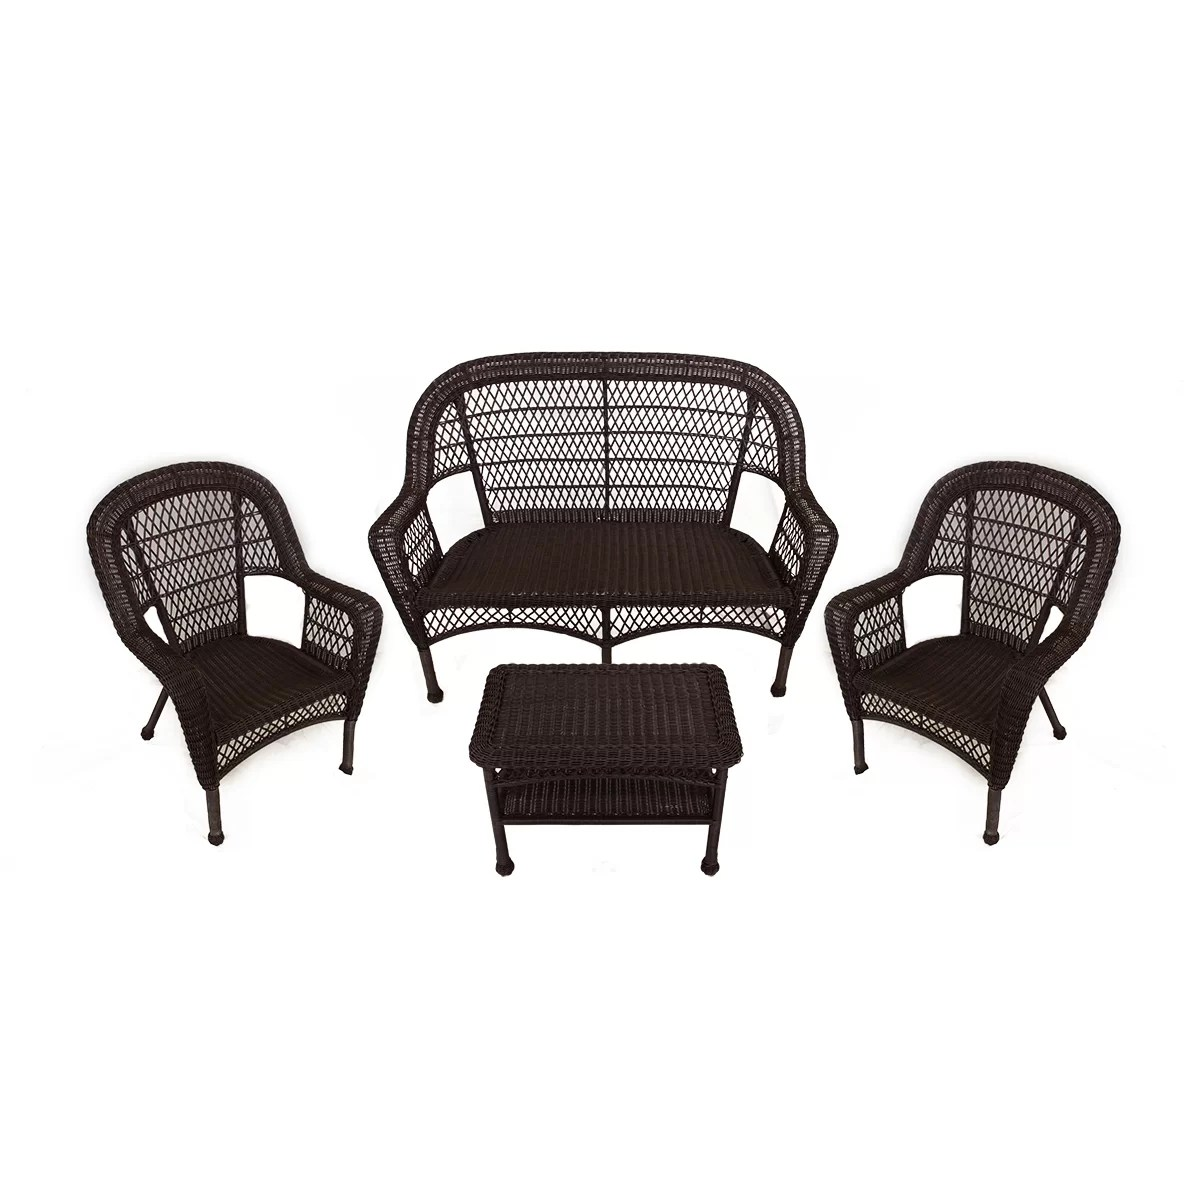 Resin Patio Chairs Lb International 4 Piece Resin Wicker Patio Furniture Set